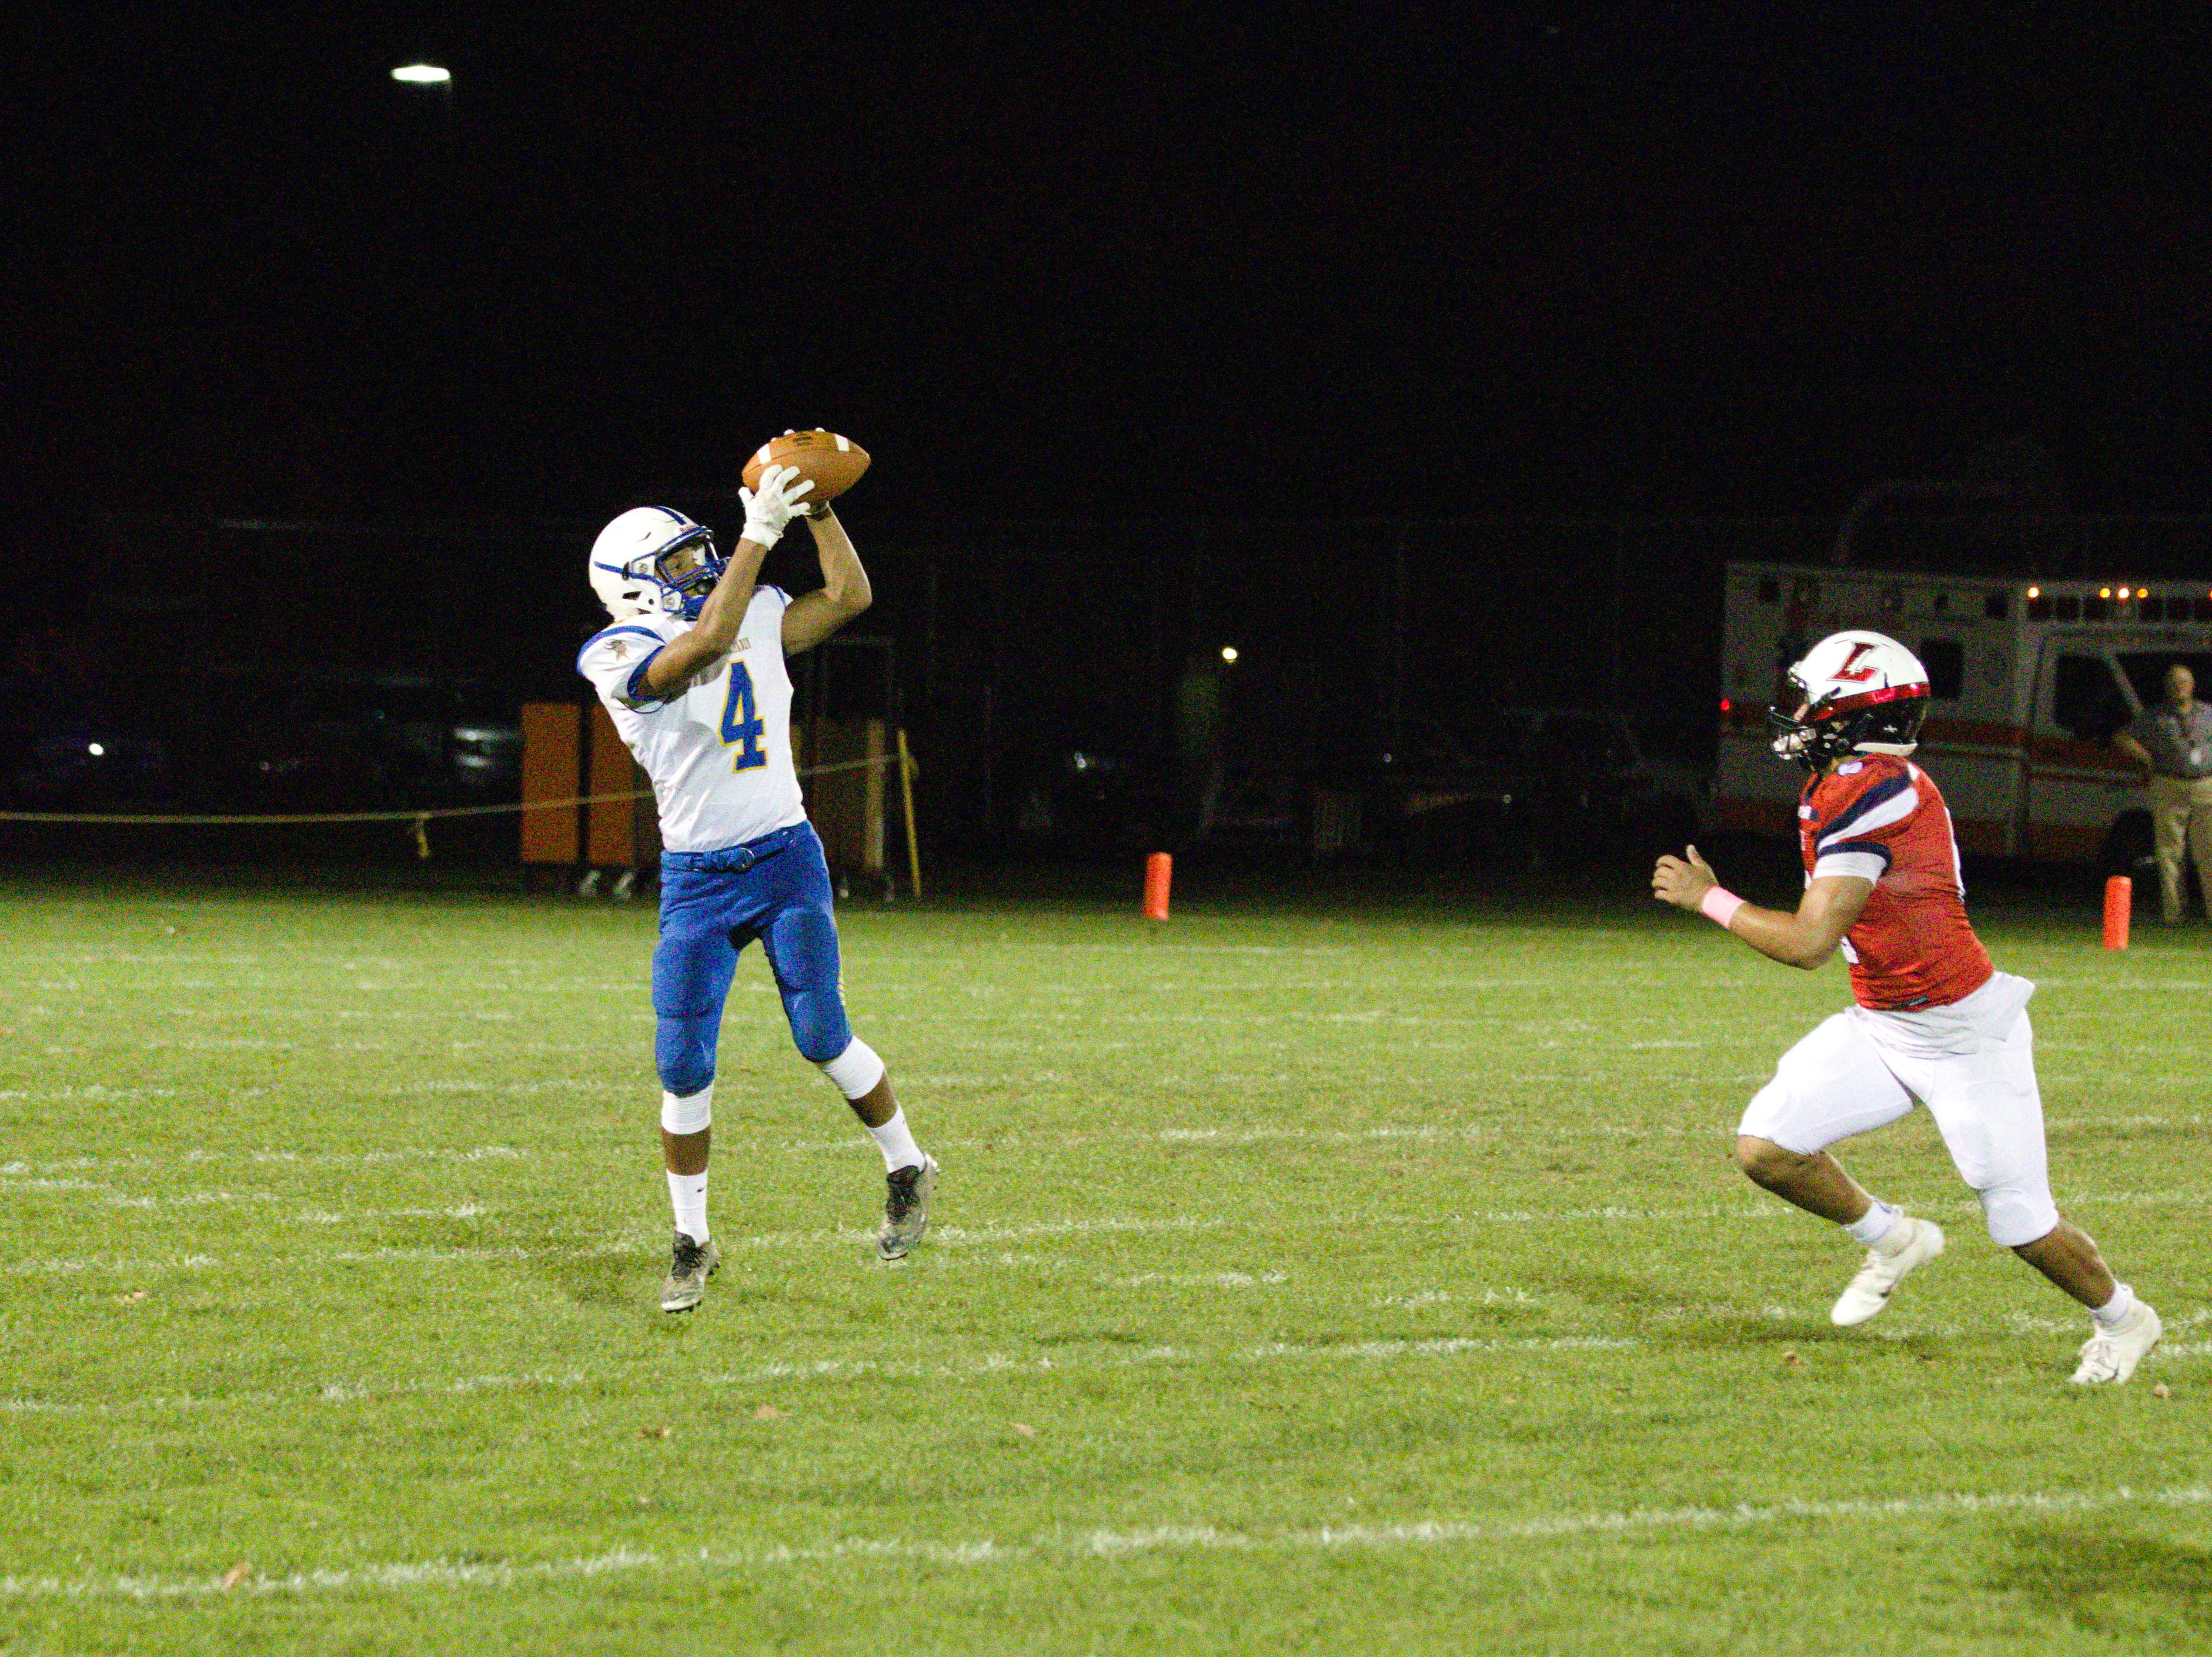 Northern Lebanon's Spencer Linton gets behind the Lebanon defense for a 42-yard reception in the first half.